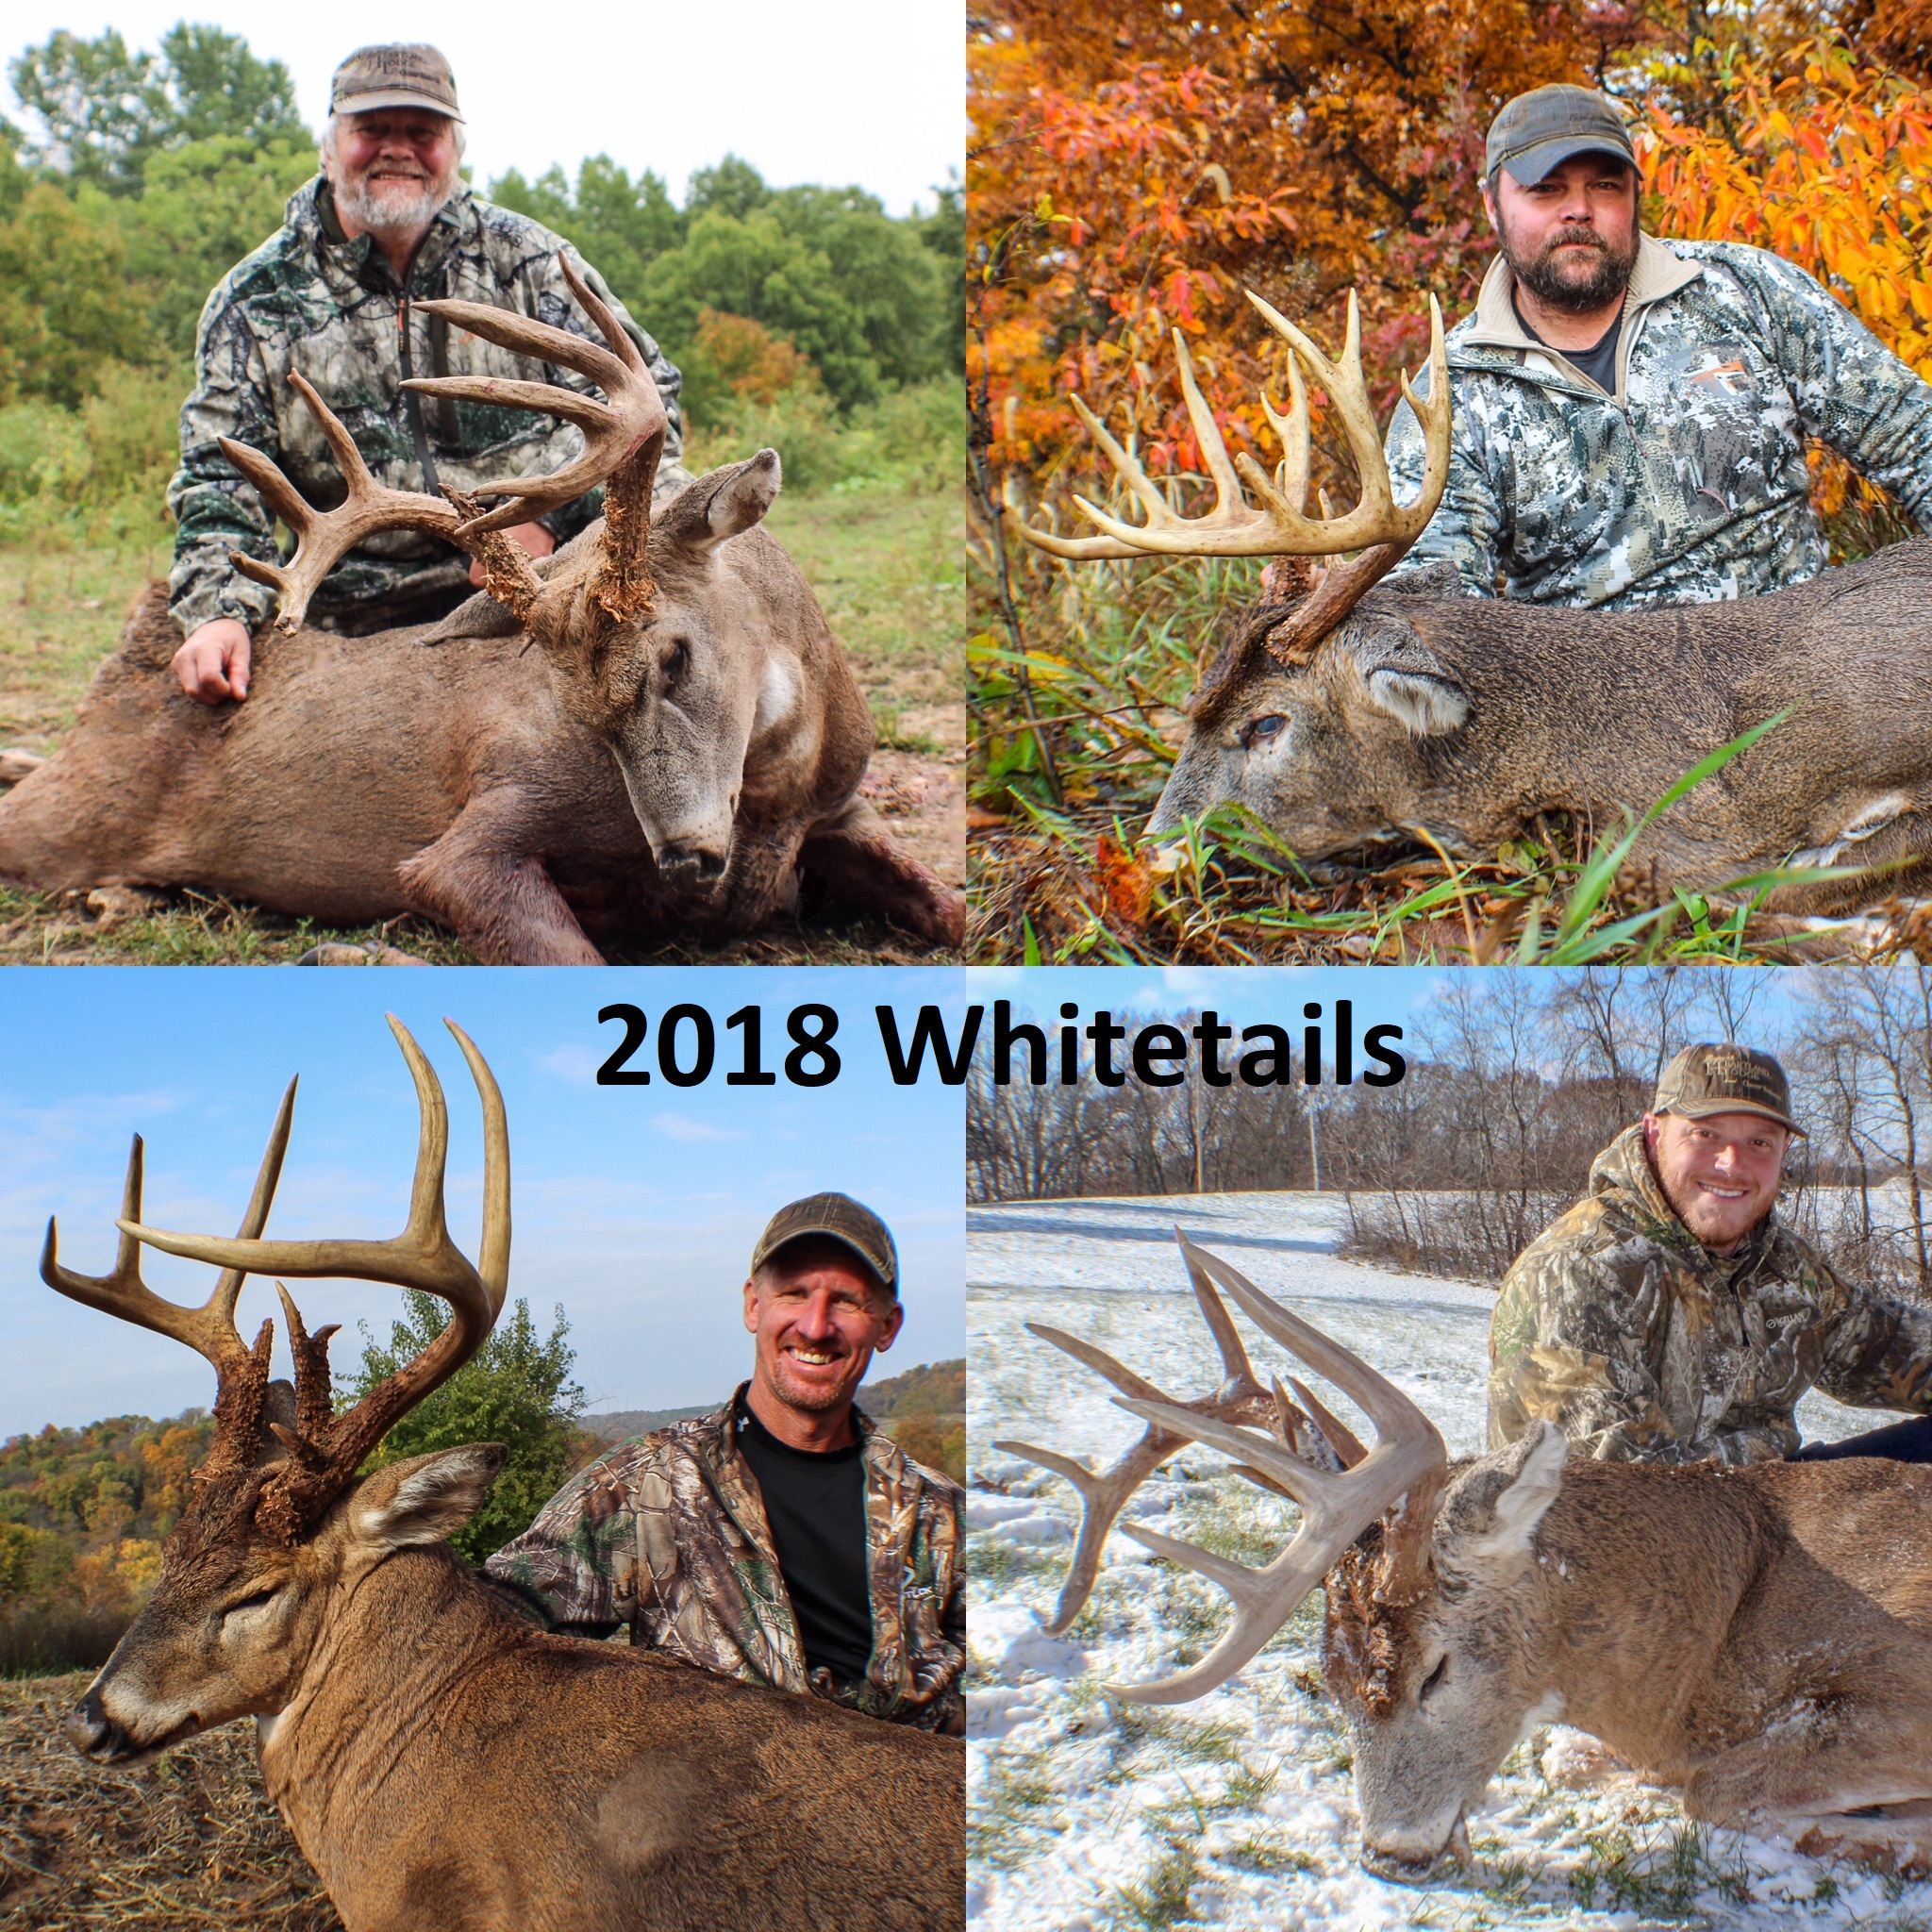 Pike County Illinois Whitetail Hunts 2020 | Heartland Lodge